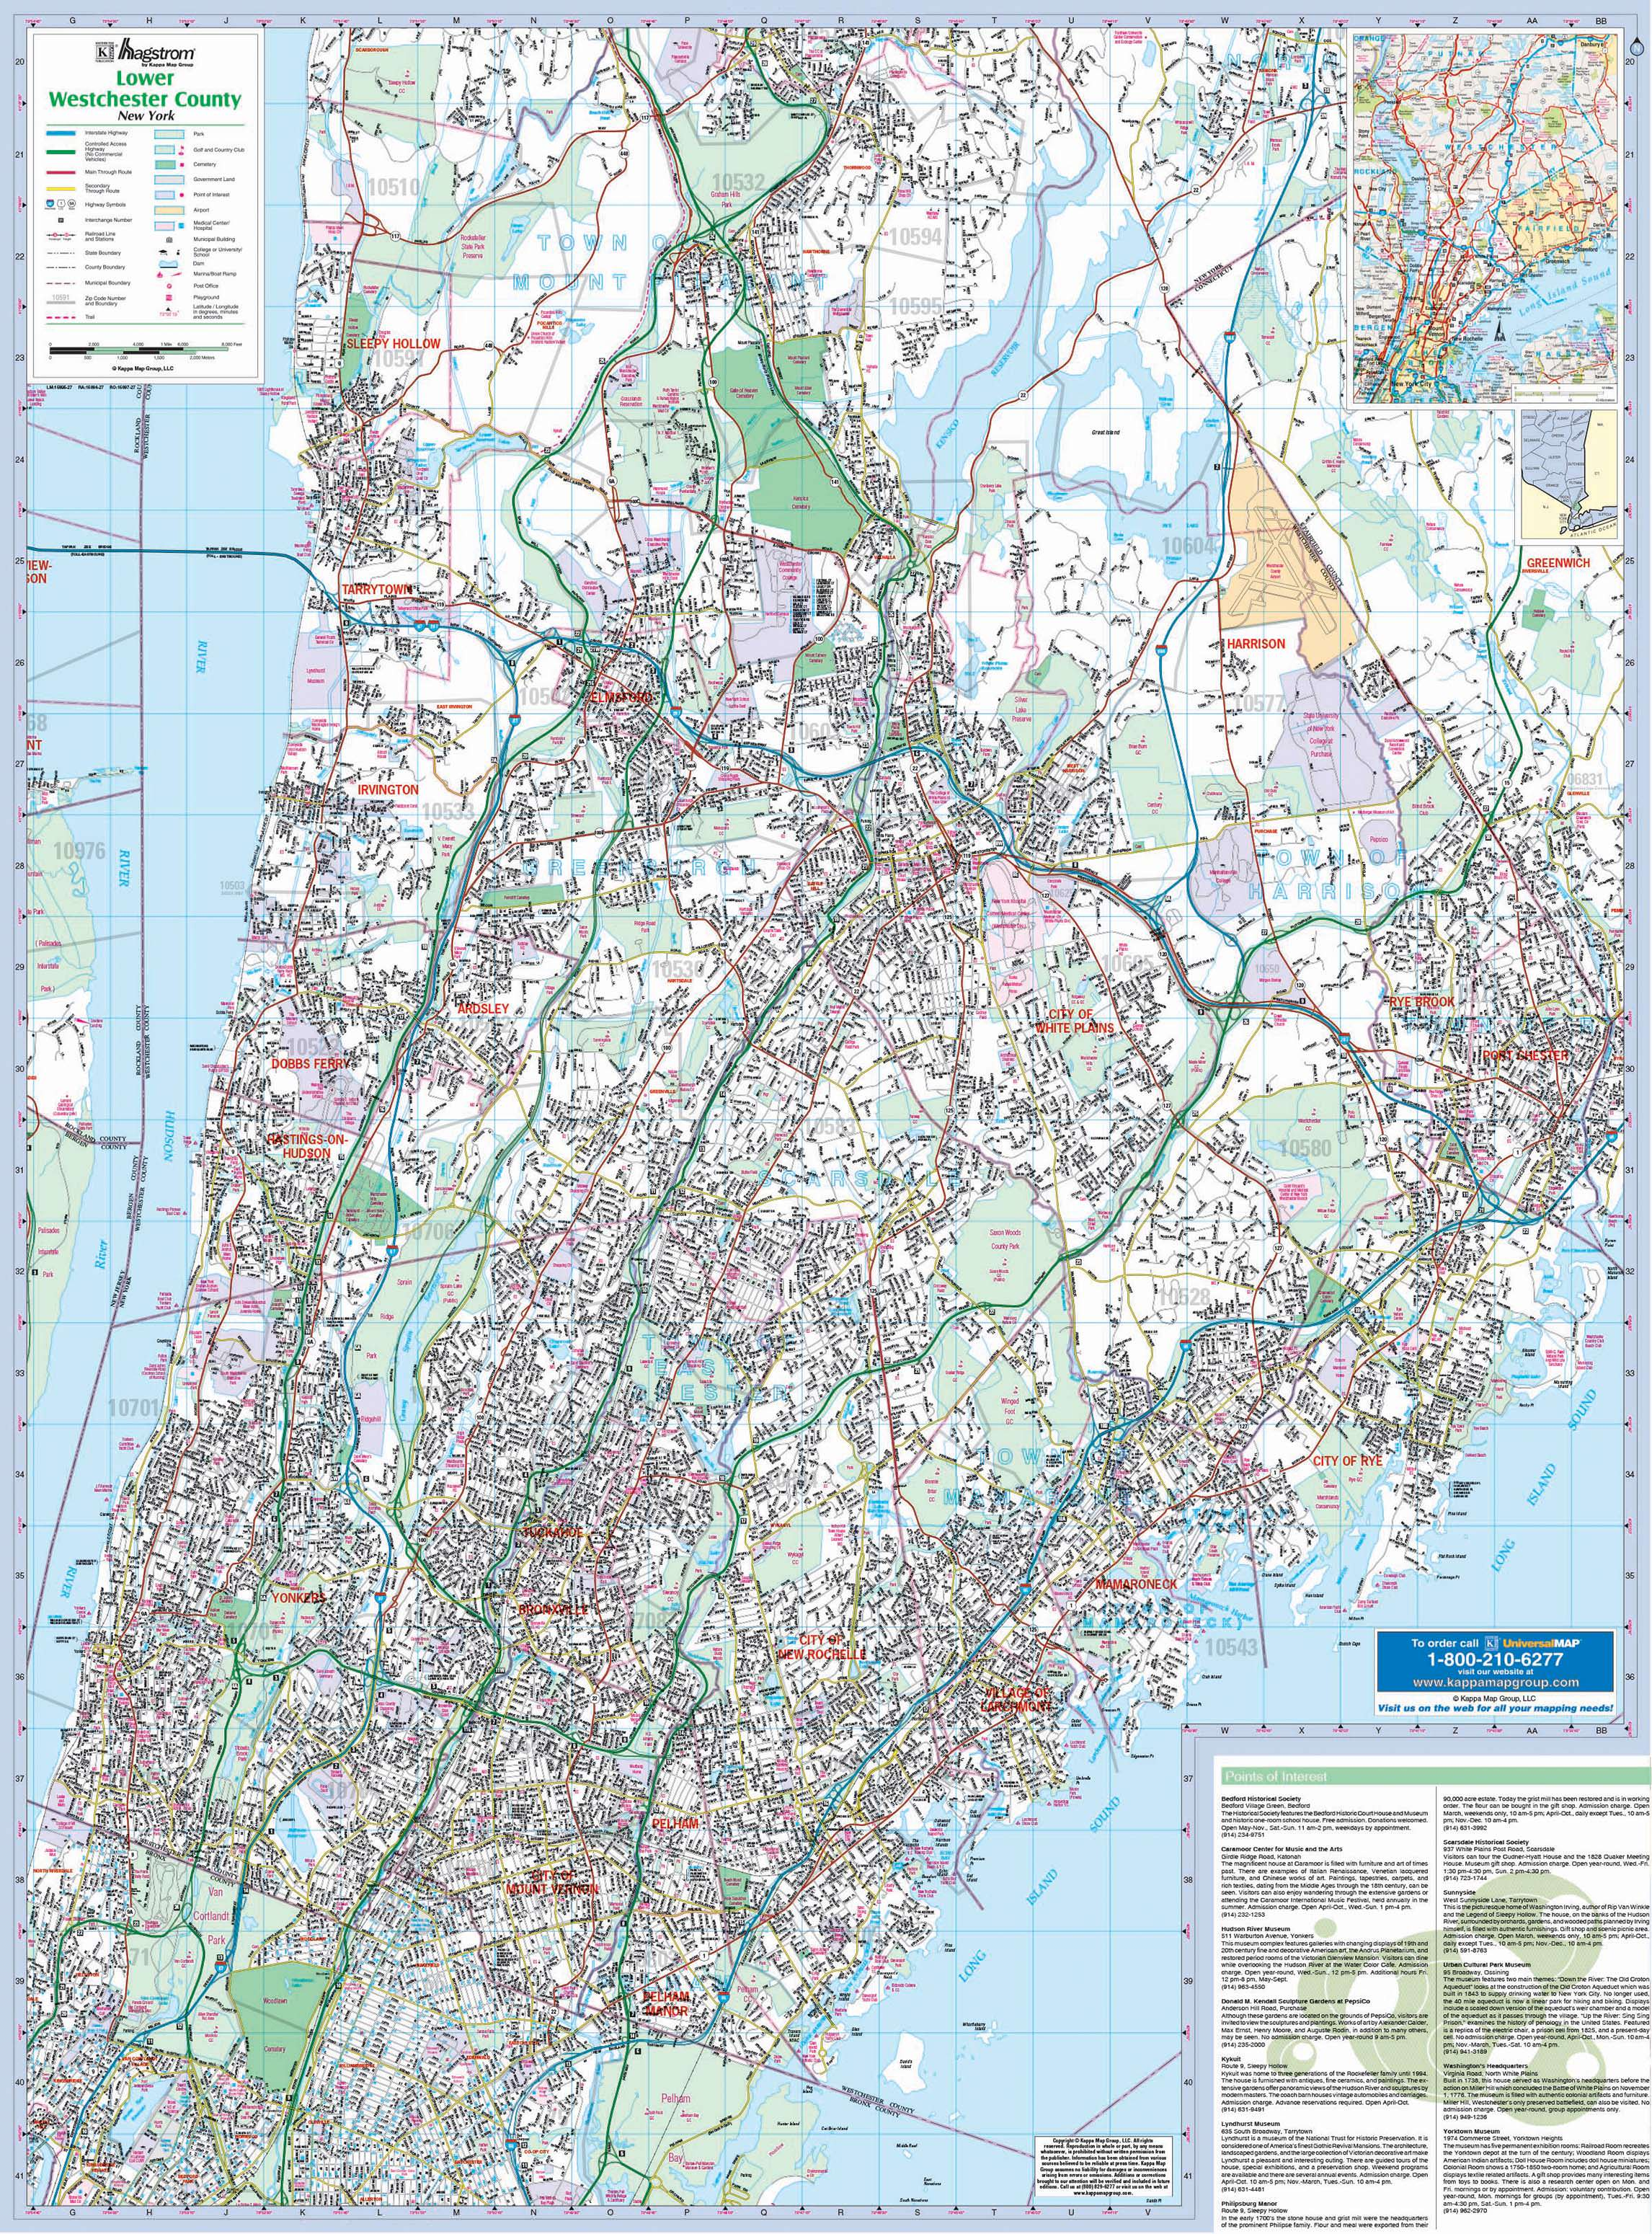 Westchester County NY Lower Wall Map KAPPA MAP GROUP